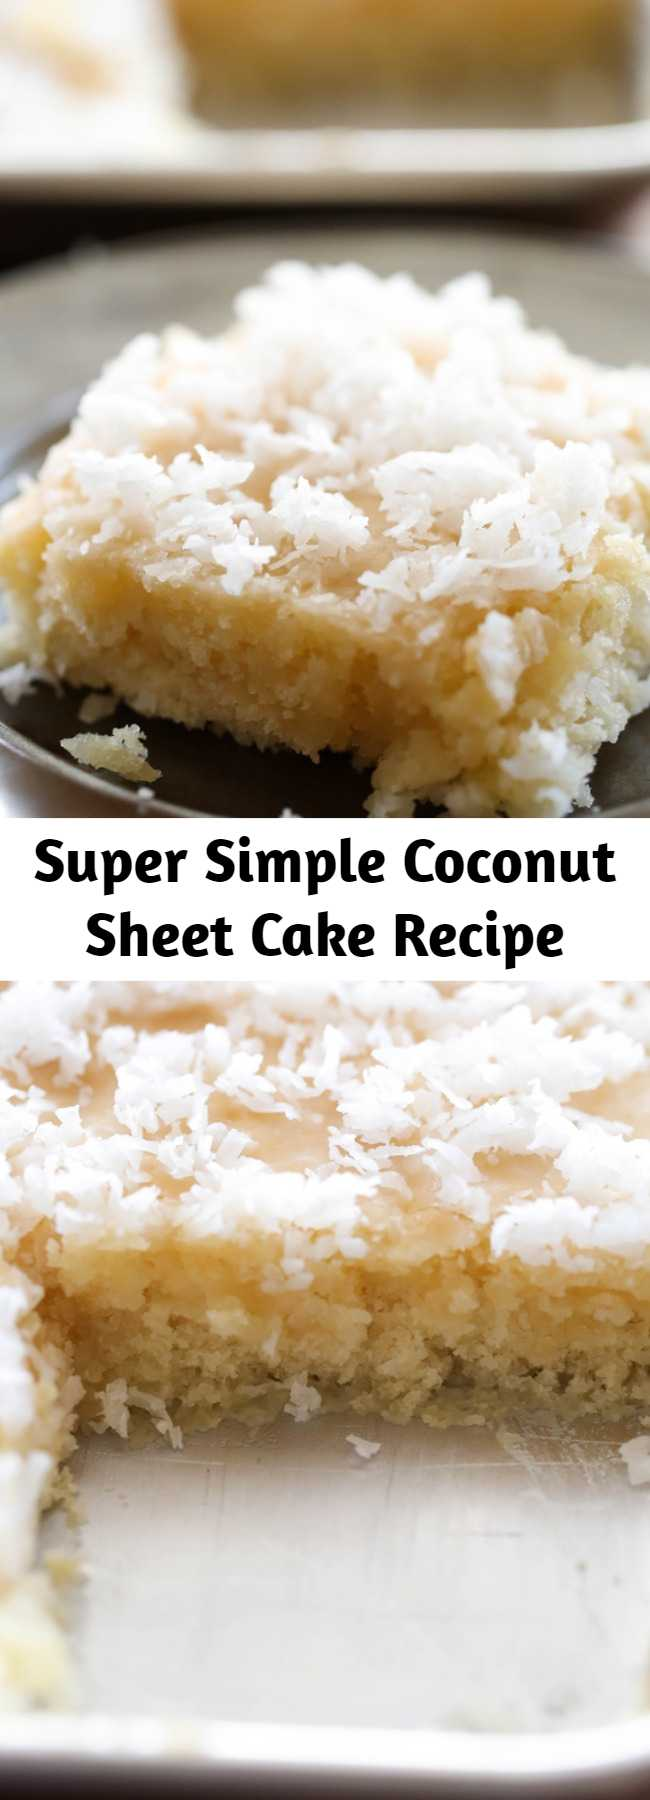 Super Simple Coconut Sheet Cake Recipe - This cake literally MELTS IN YOUR MOUTH!!! It is beyond delicious and super simple to make! One of my favorite cake recipes to date!